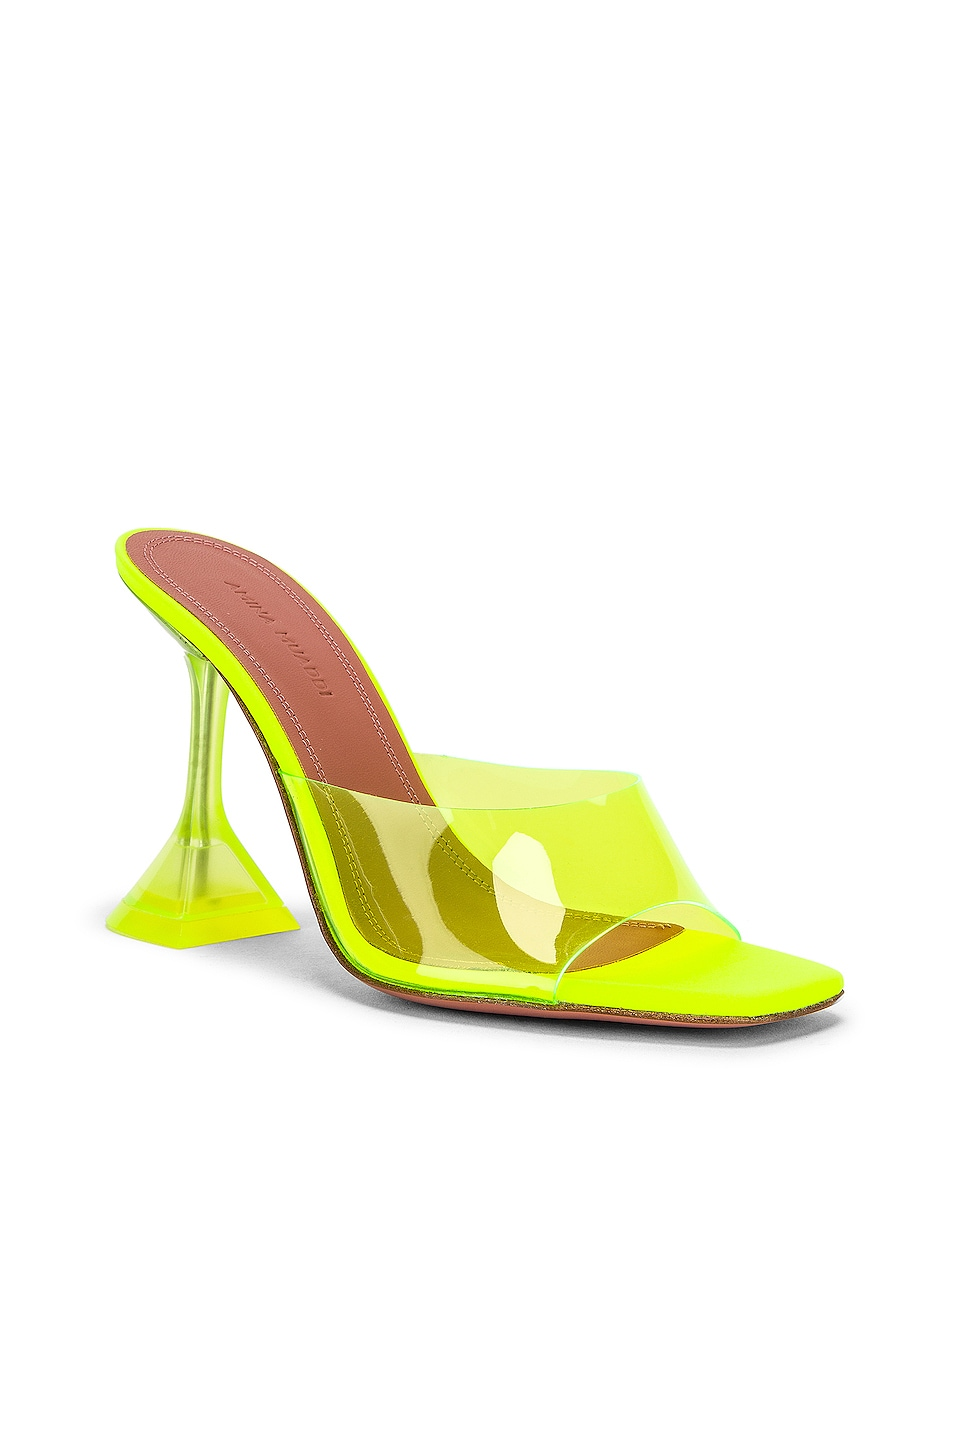 Image 2 of AMINA MUADDI Lupita Glass Sandal in Yellow Fluo